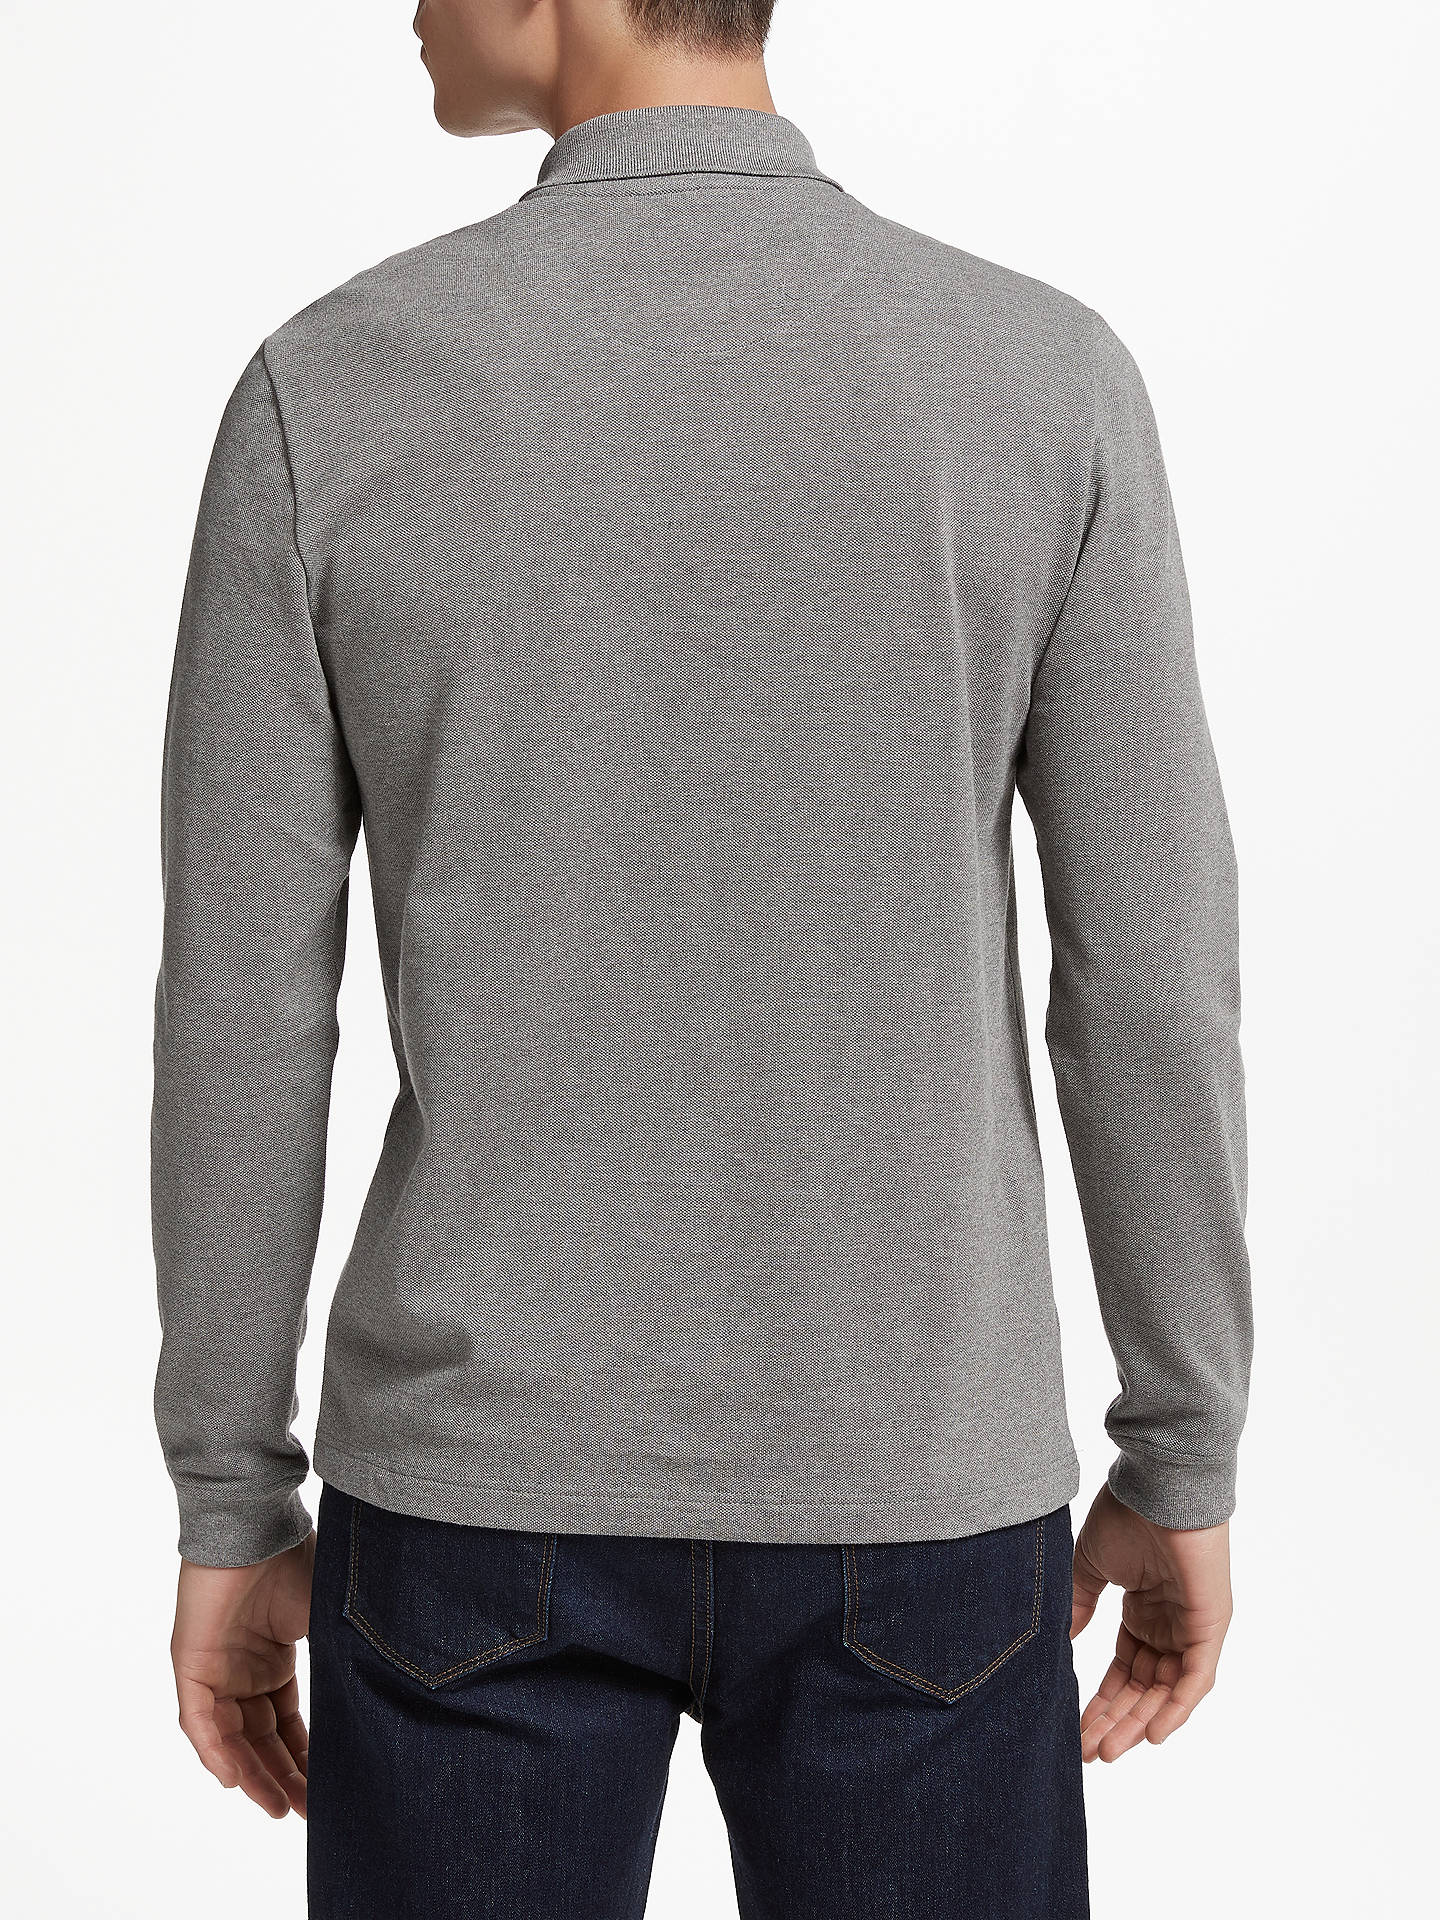 3cf6424e Lacoste Mountain Long Sleeve Polo Shirt, Grey at John Lewis & Partners